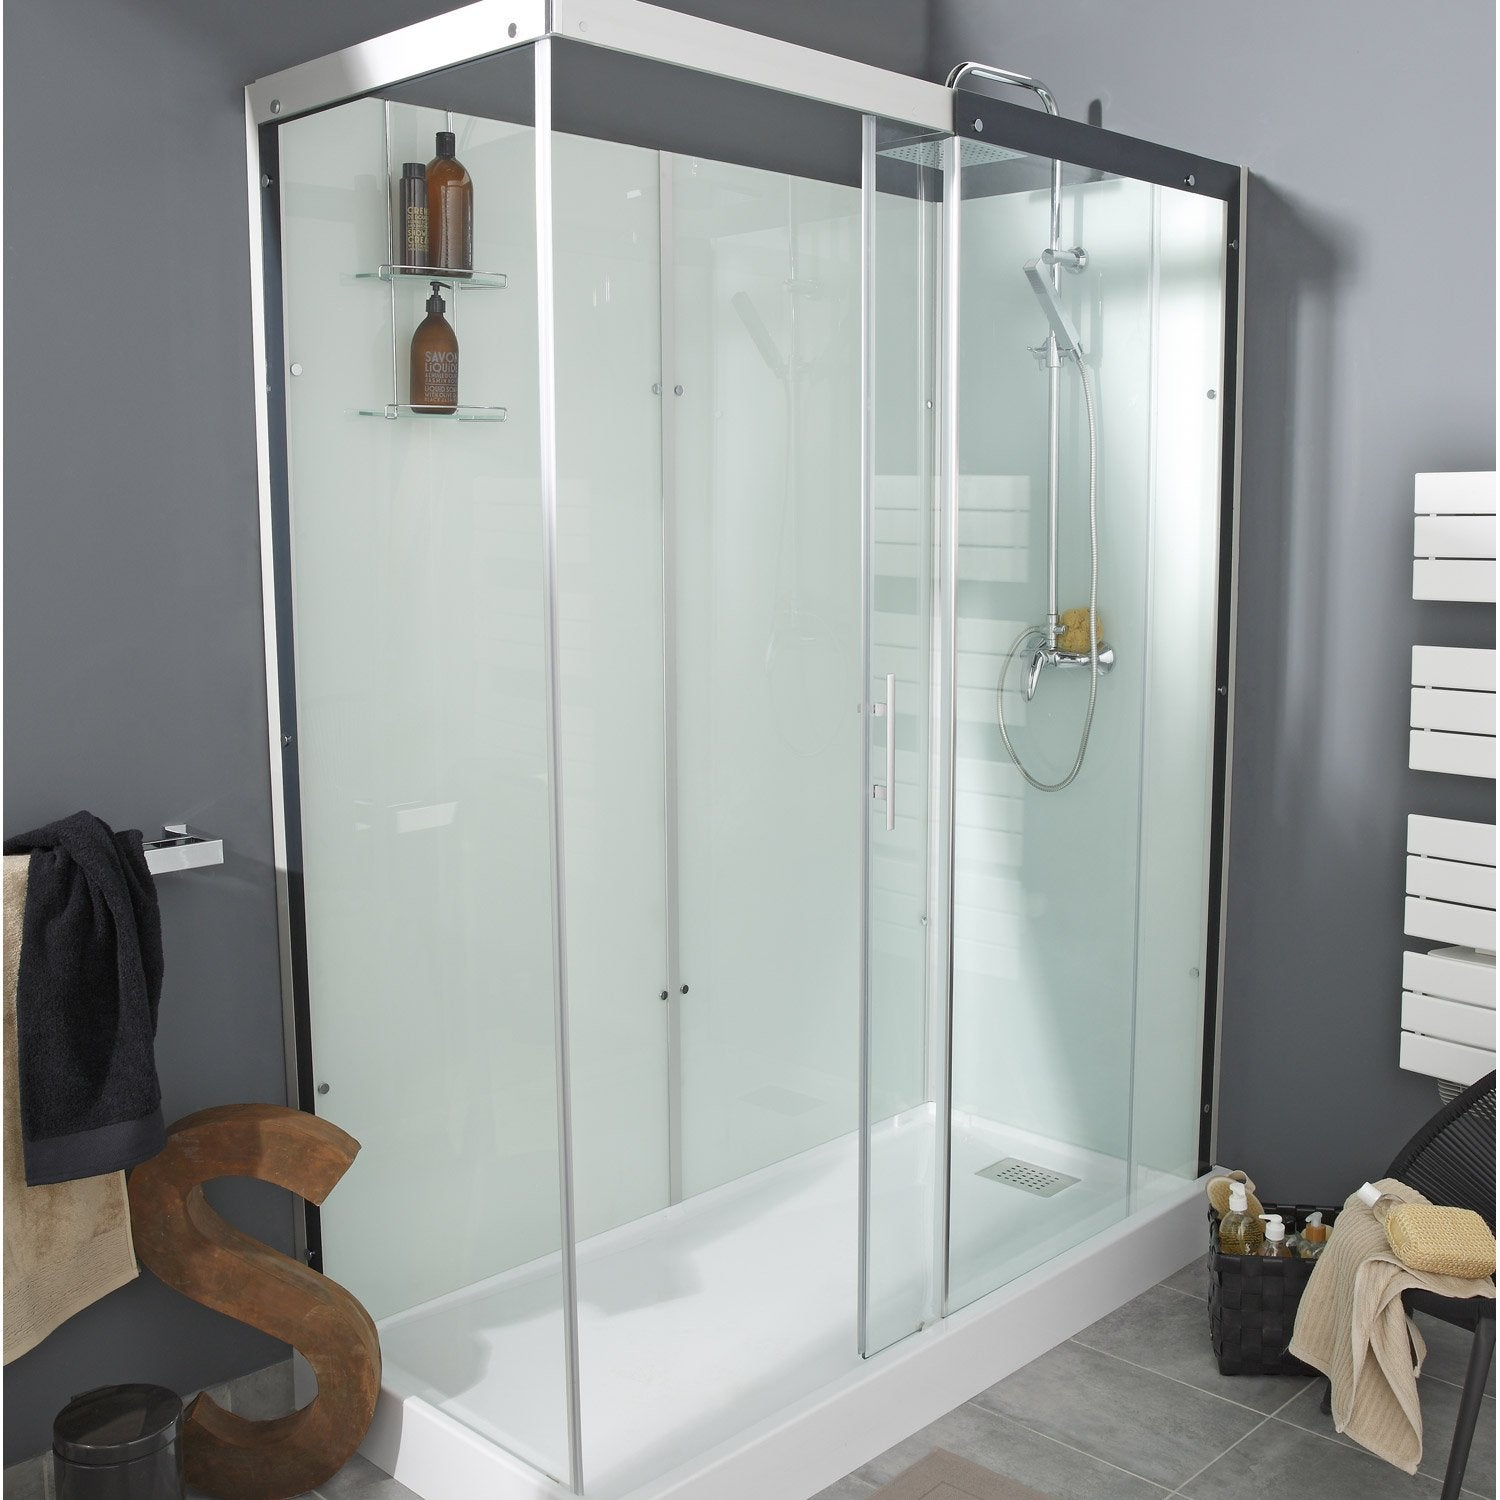 Cabine de douche rectangulaire 170x80 cm thalaglass 2 for Douche chez leroy merlin